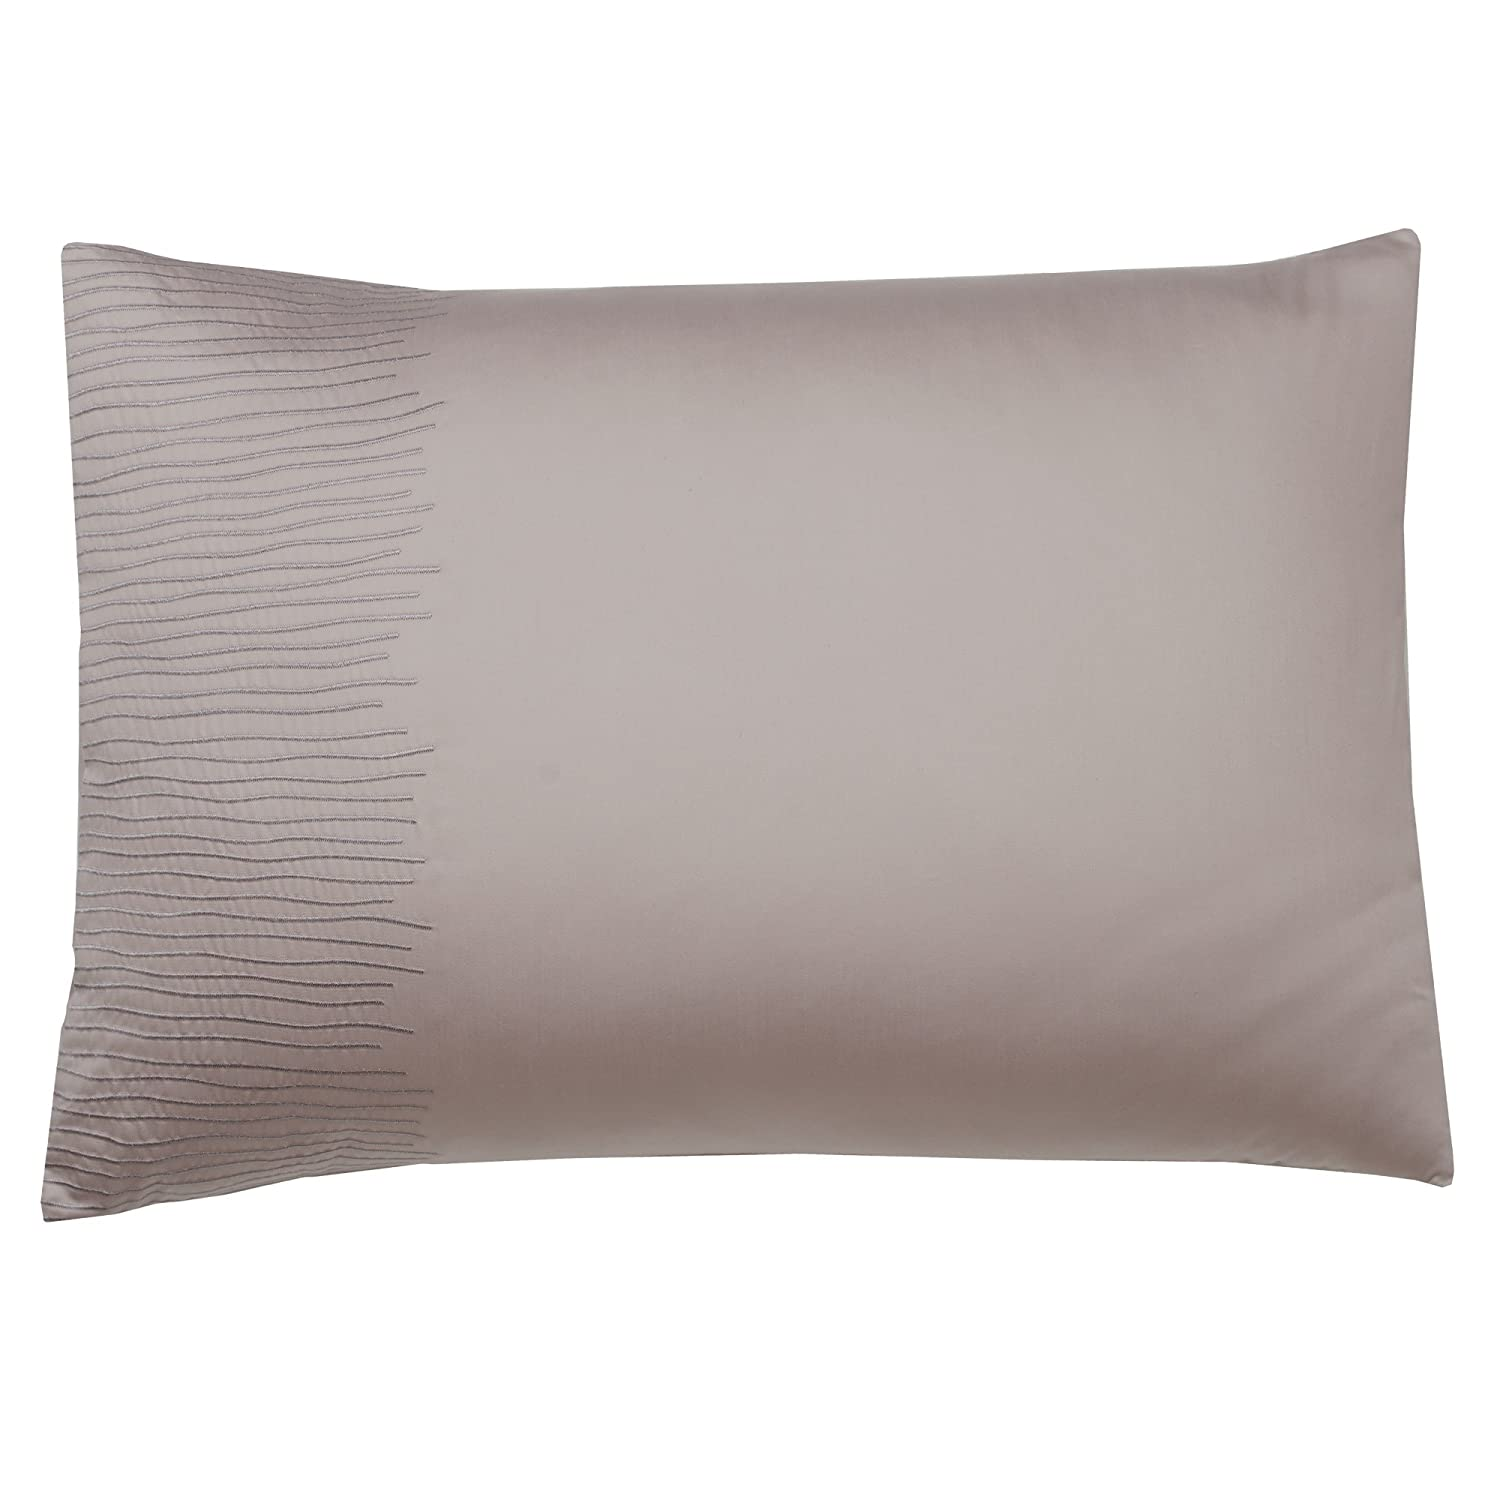 Portico 20 by 36-Inch Windswept Sham Sphinx Rose King